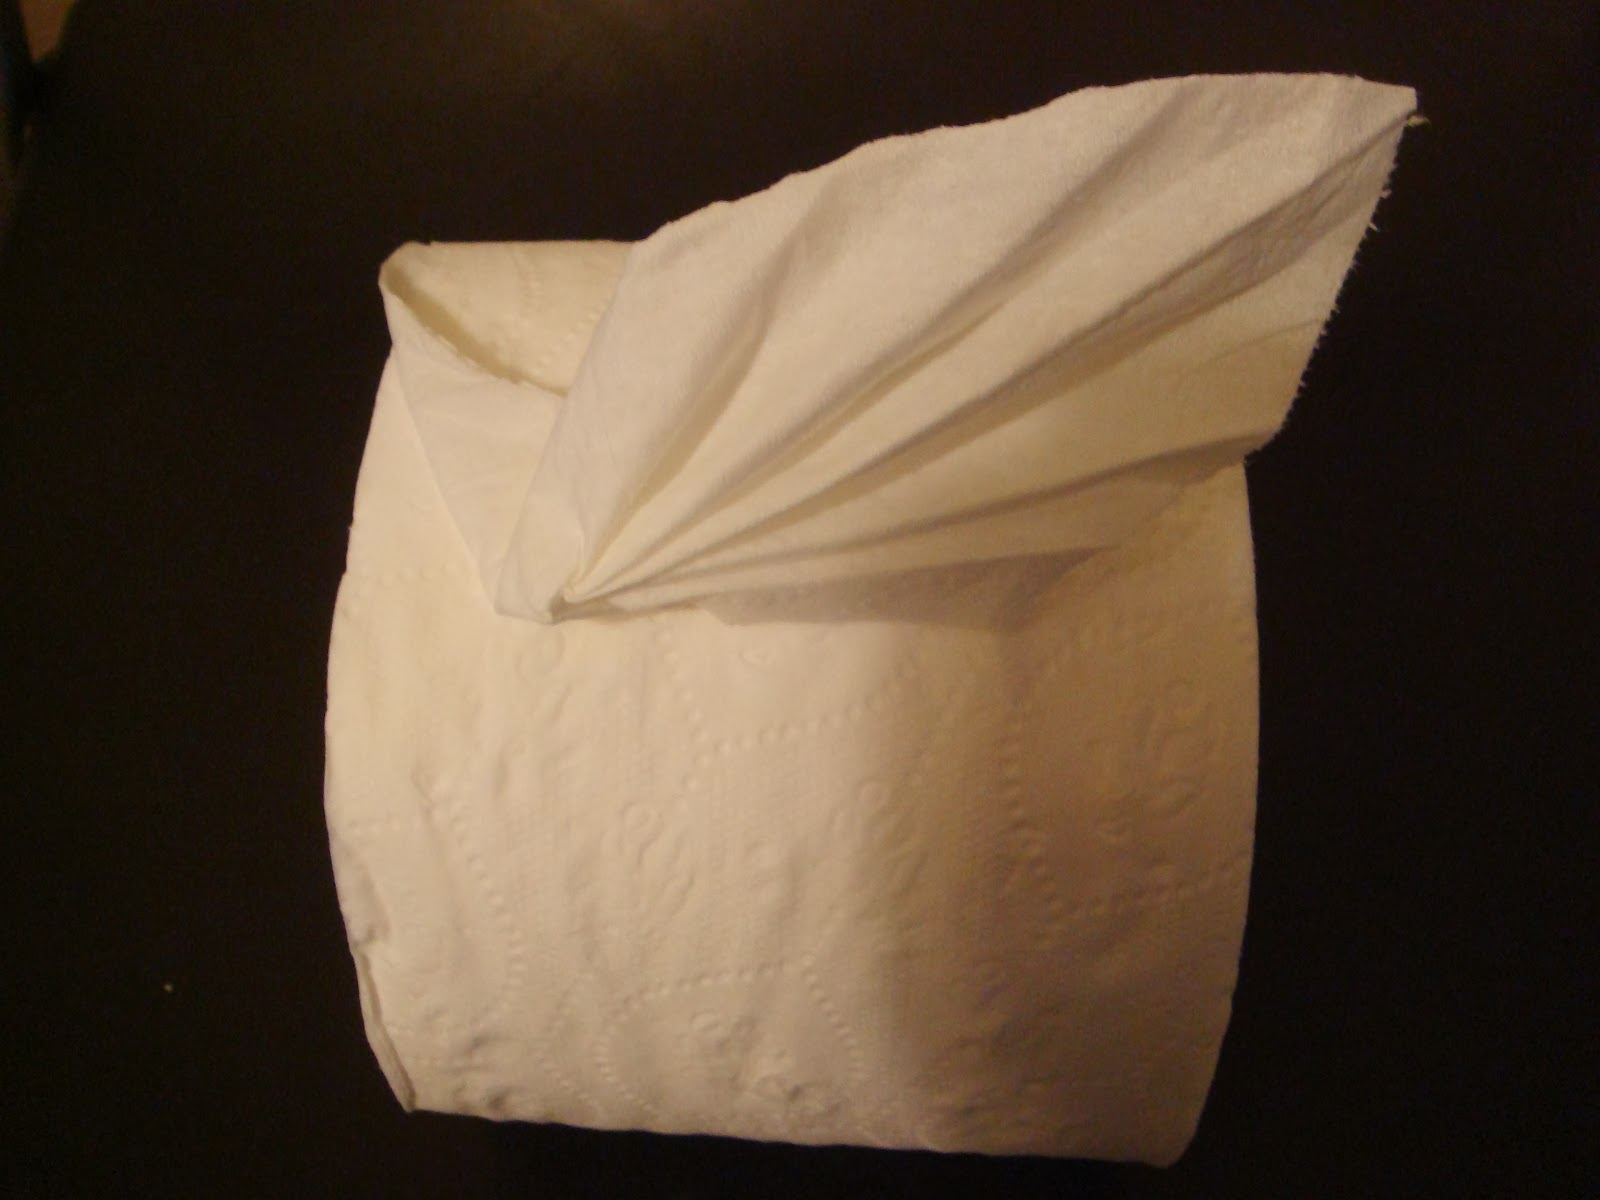 toilet paper origami leaf instructions amypayroo